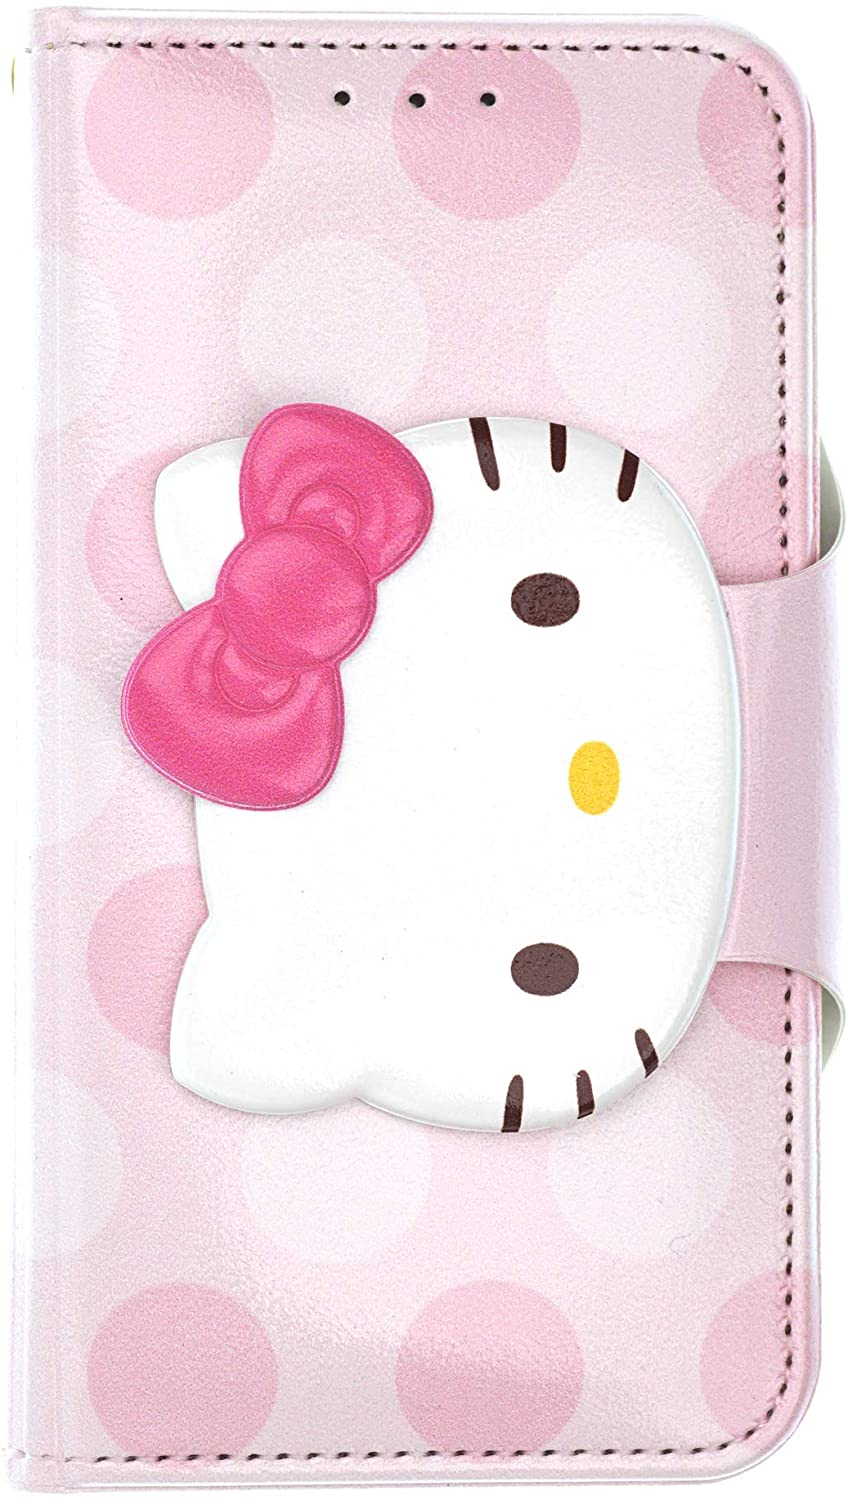 iPhone 8 Plus/iPhone 7 Plus Case Hello Kitty Cute Diary Wallet Flip Mirror Cover [ iPhone 8 Plus/iPhone 7 Plus ] Case - Face Button Hello Kitty Baby Pink